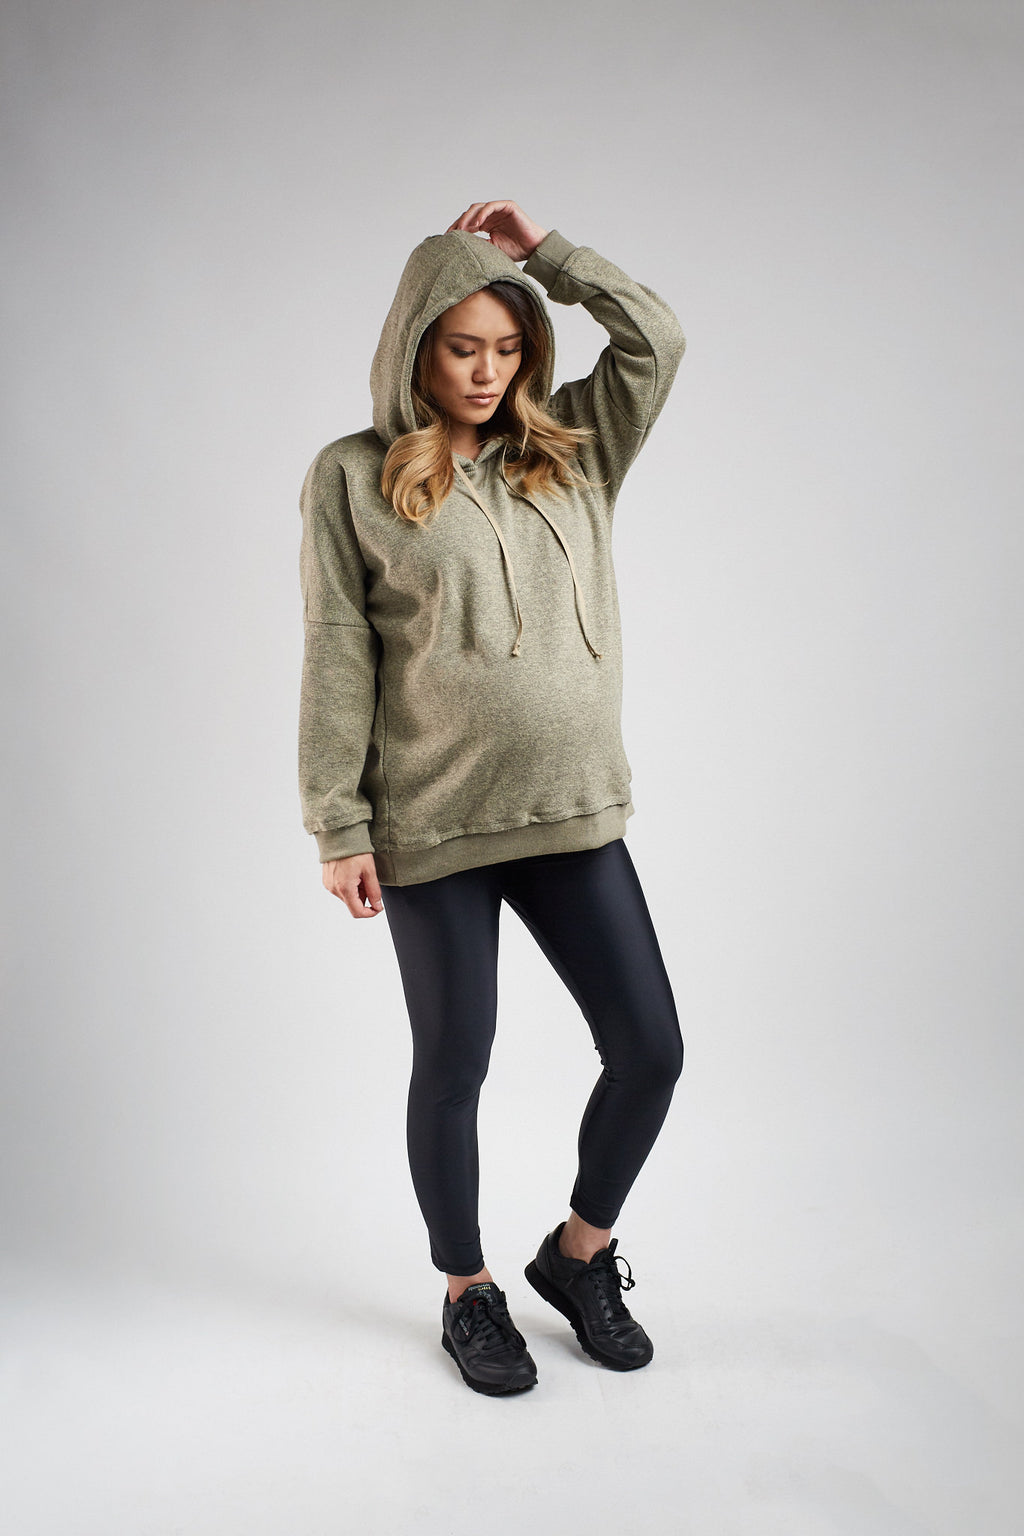 SALE THRESHOLD HOODIE Was $89